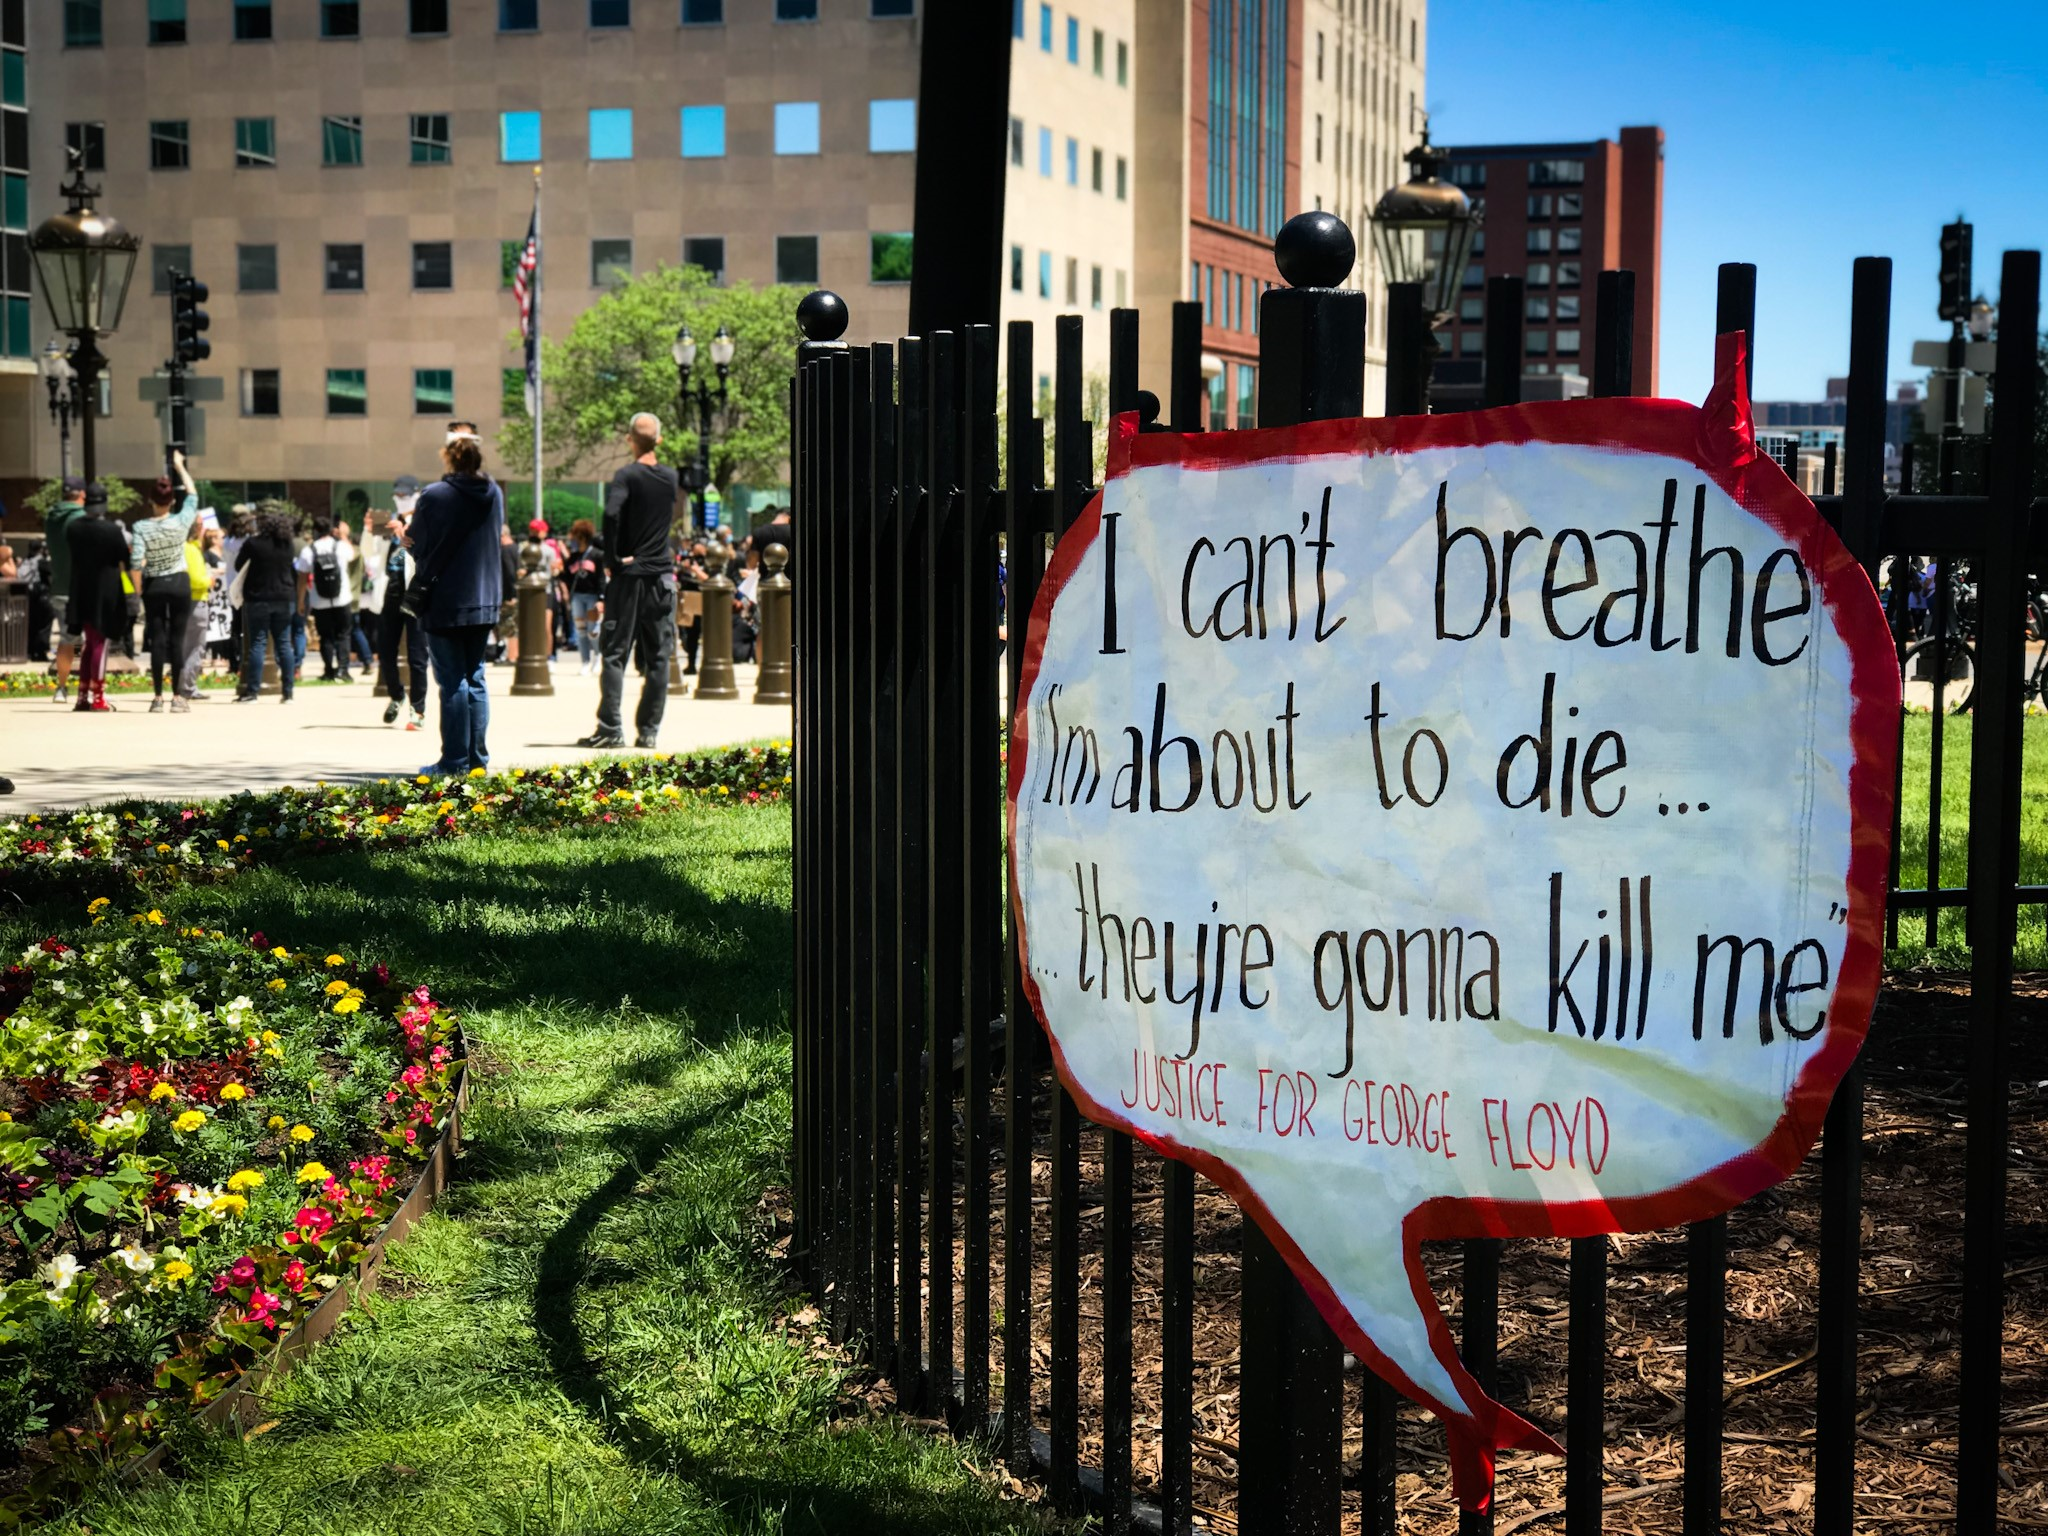 On Sunday, May 31, 2020 people gathered in Lansing to protest the death of George Floyd. What started as a peaceful demonstration turned destructive as the night went on. (WWMT/Mikenzie Frost)